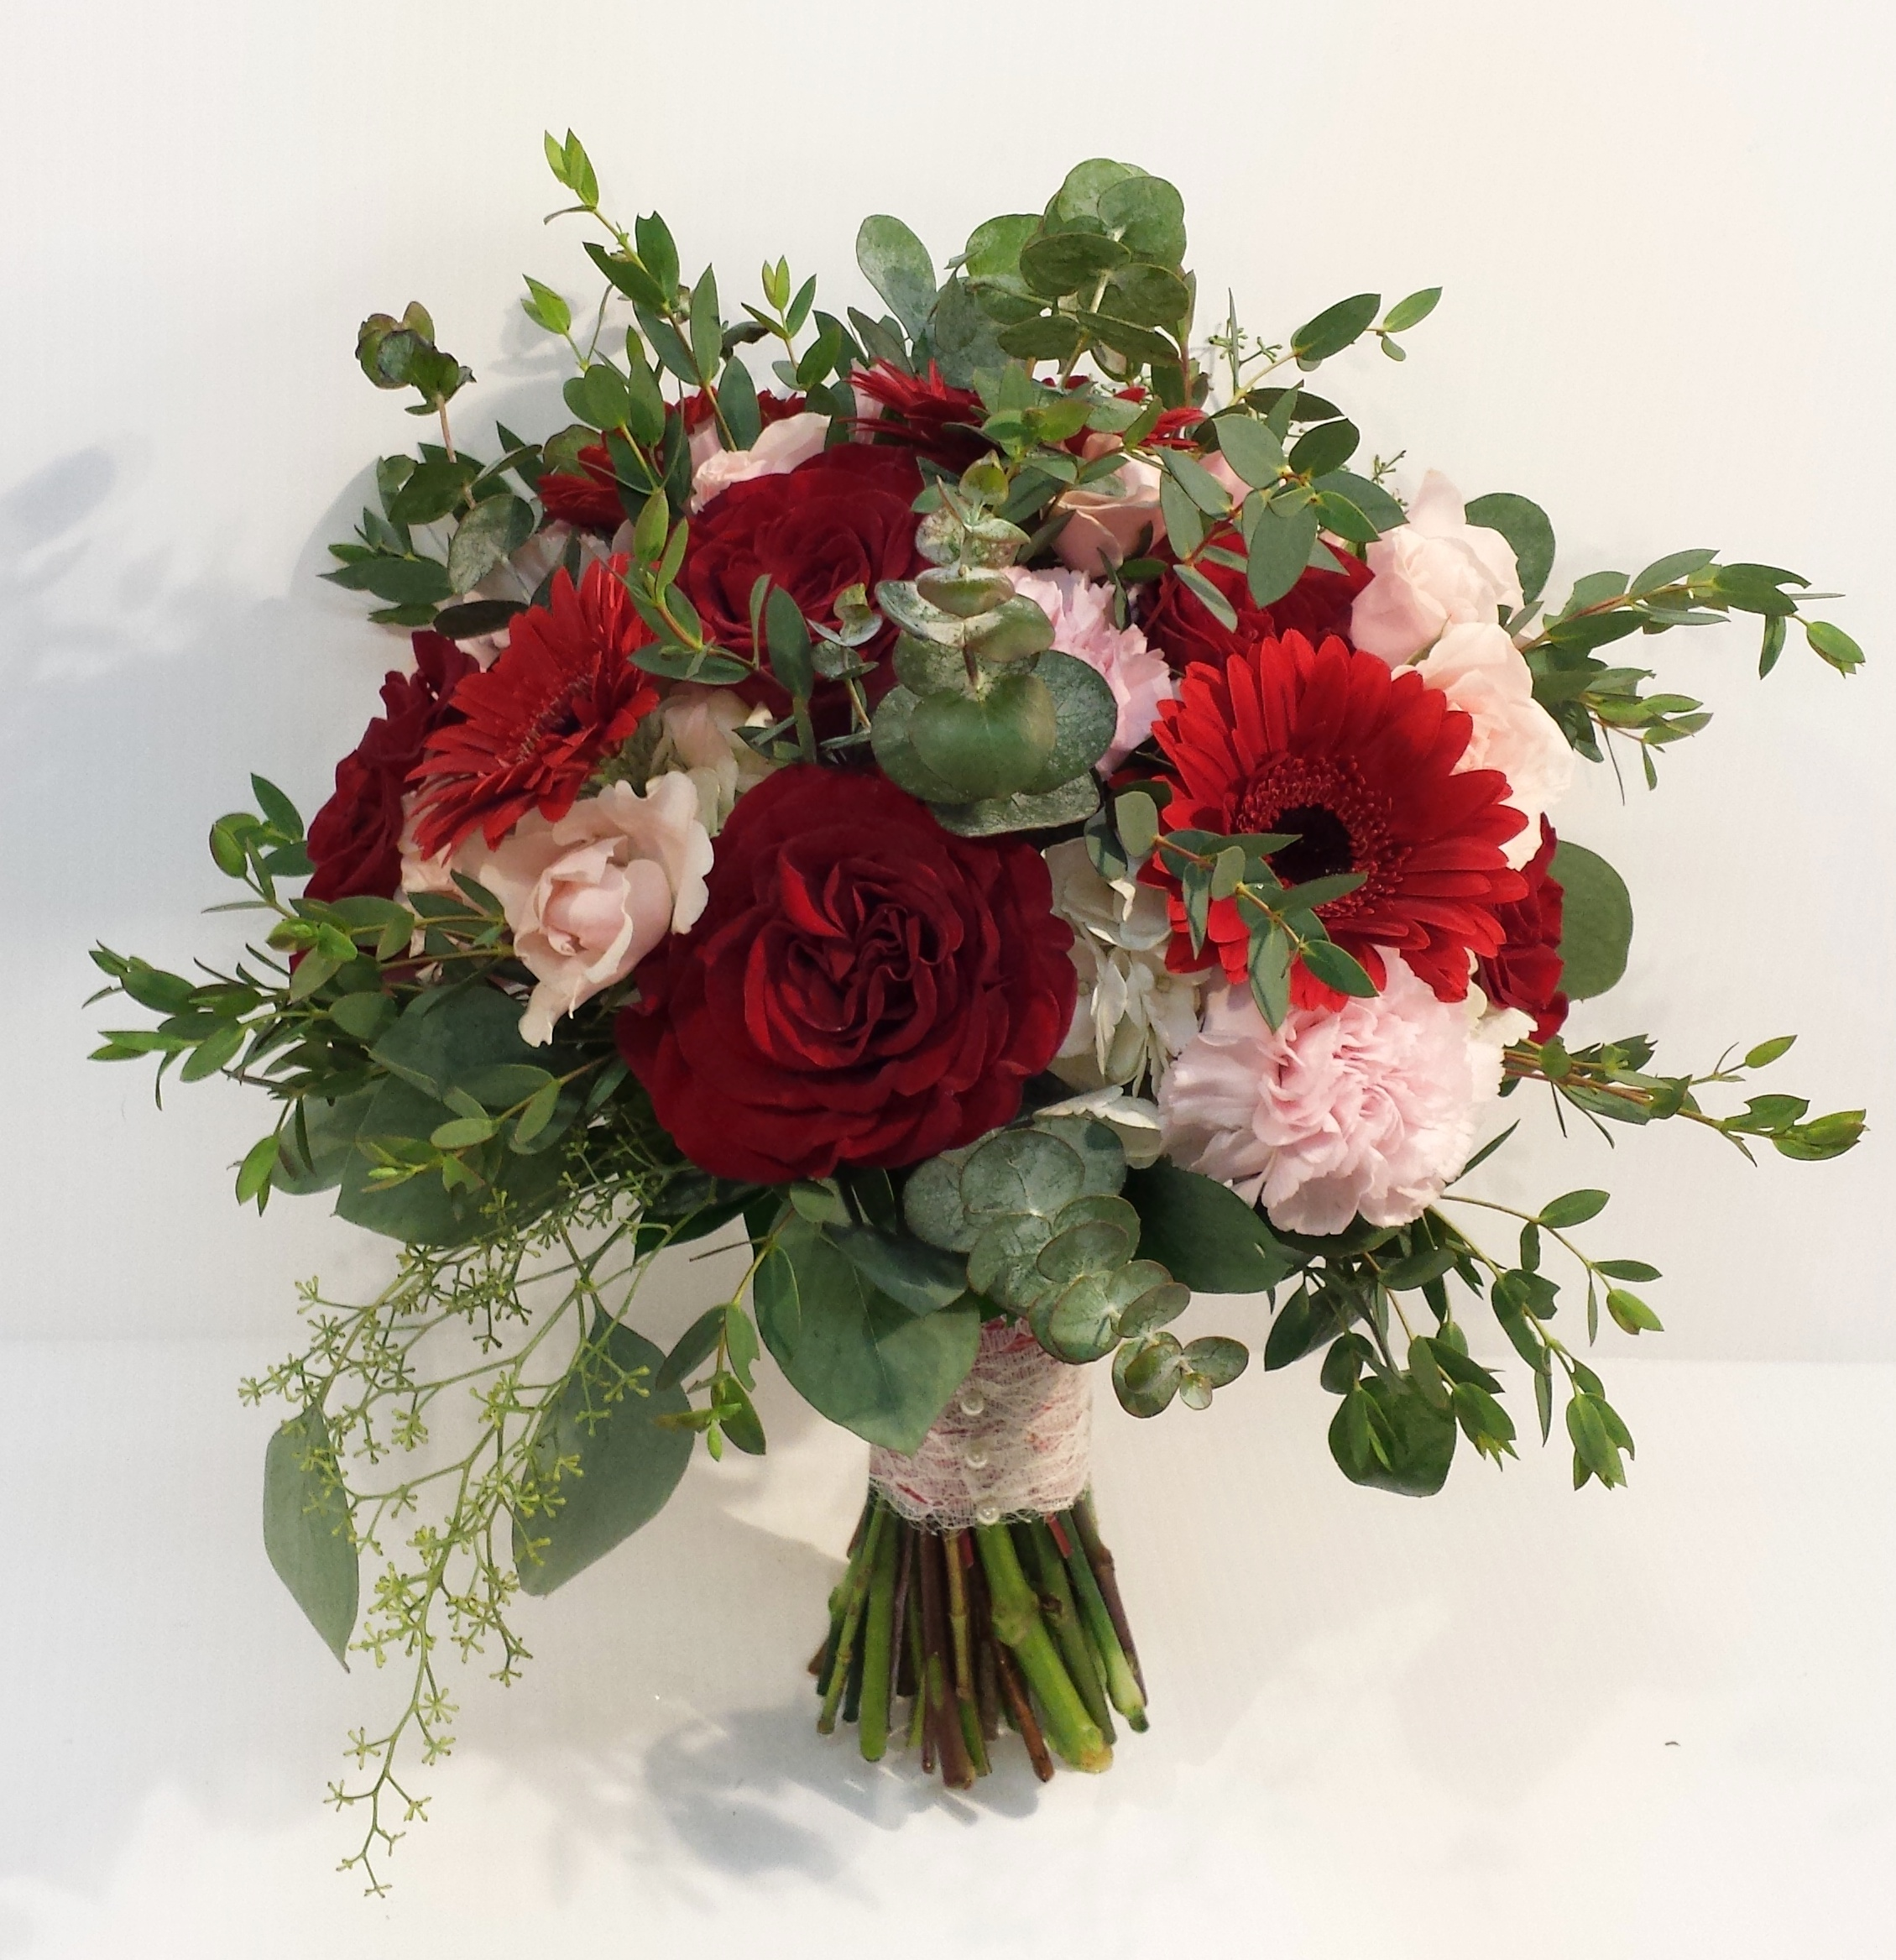 calgary wedding flowers florist dahlia floral design yyc weddings real weddings inspiration bridal bouquet wedding flowers red blush pink cream